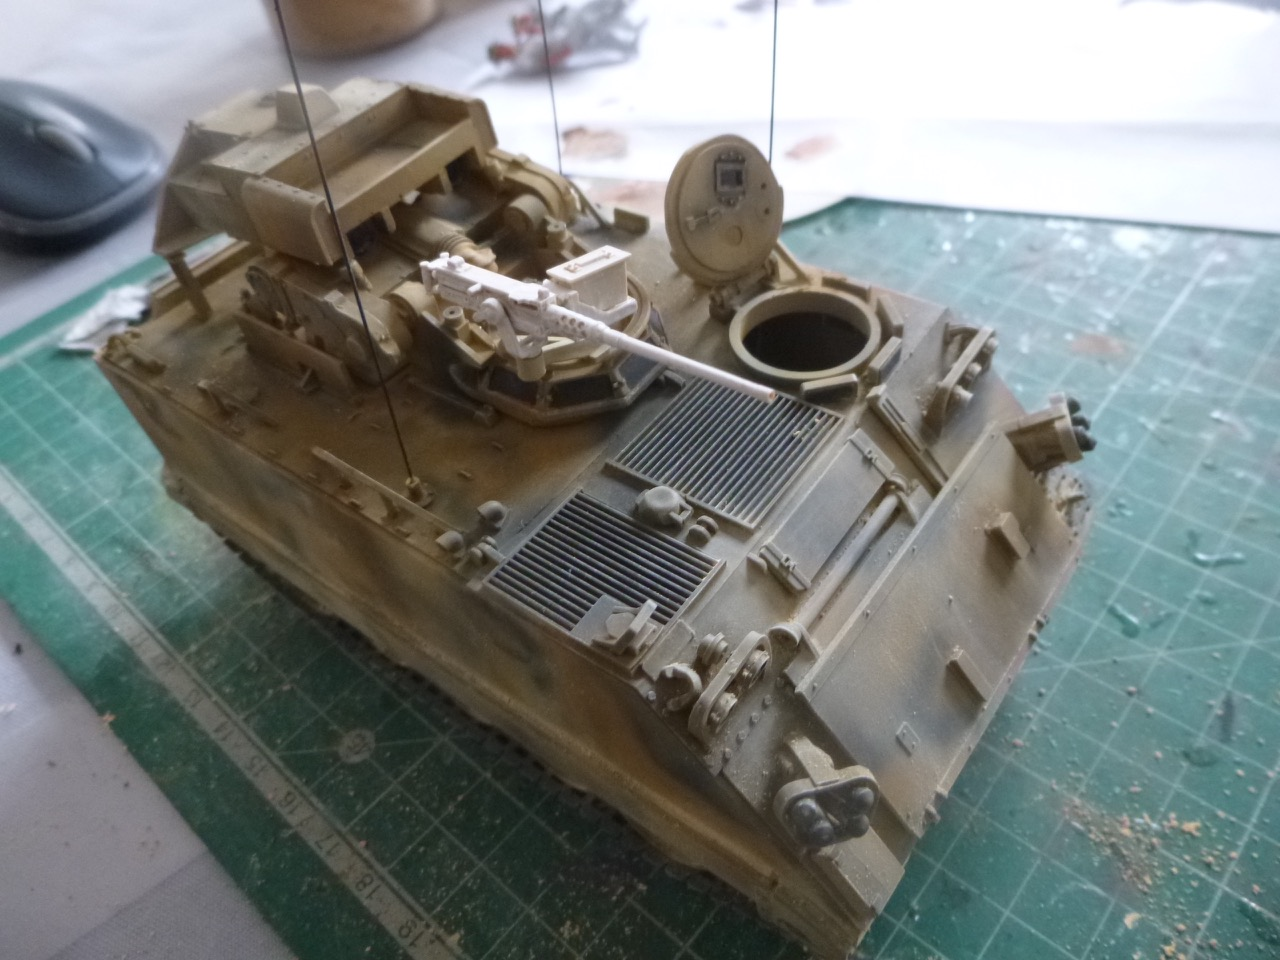 M113 / M109 Tow, une conversion en résine Verlinden au 1/35, base Tamiya 170123124037891806